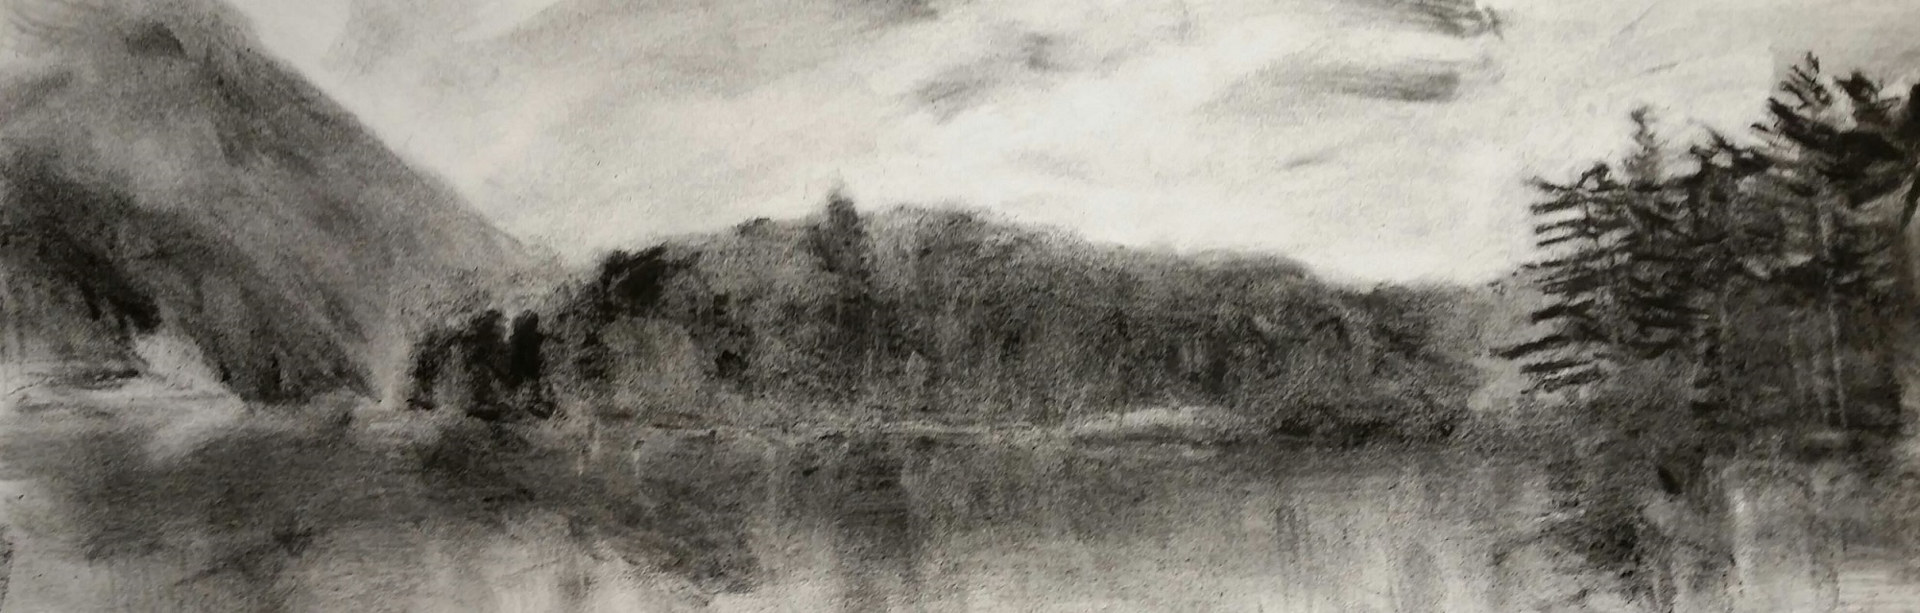 chapel pond charcoal  image 7x 24in   framed 15 1/4x 37in    by Michael Gaudreau